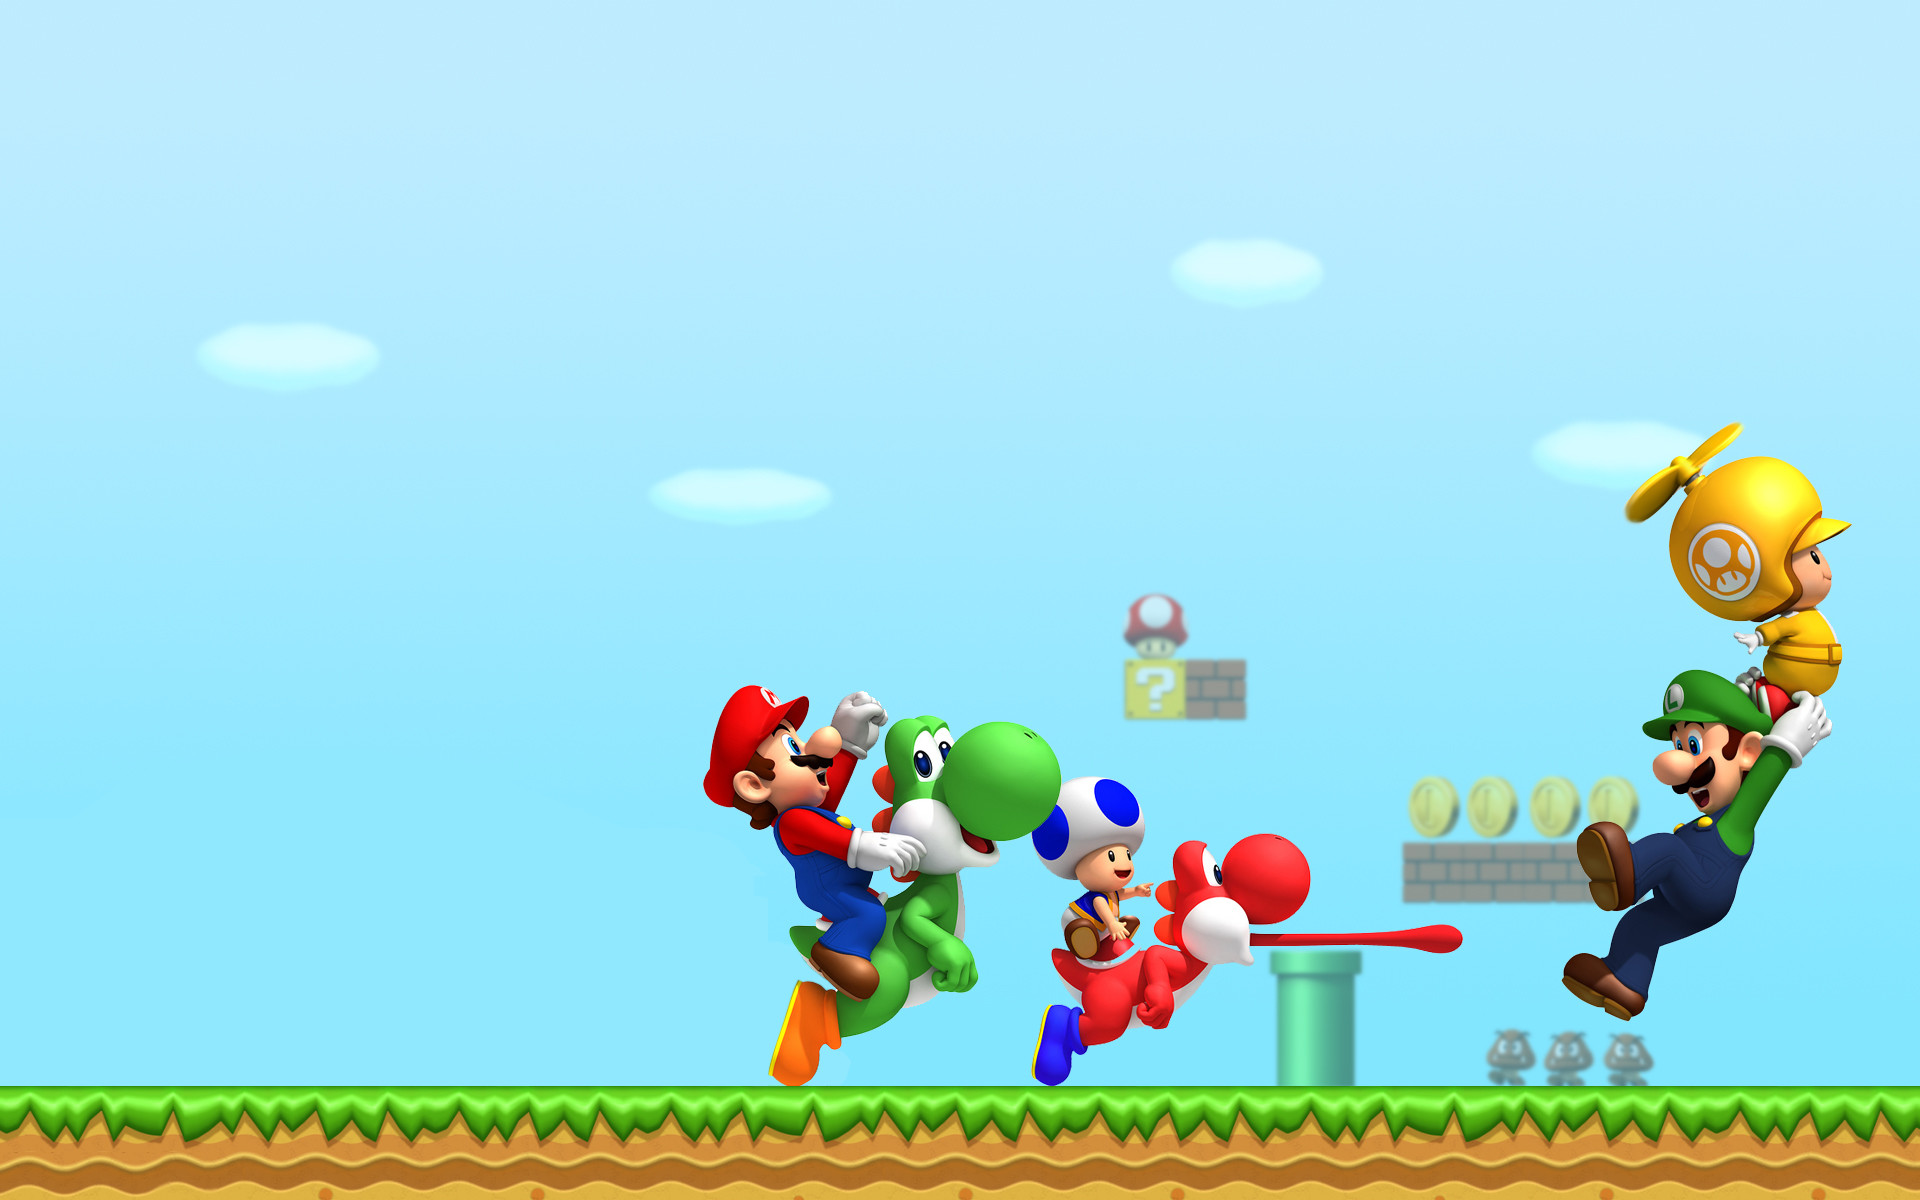 Mario Luigi New Super Mario Bros Wii 1934811 Hd Wallpaper